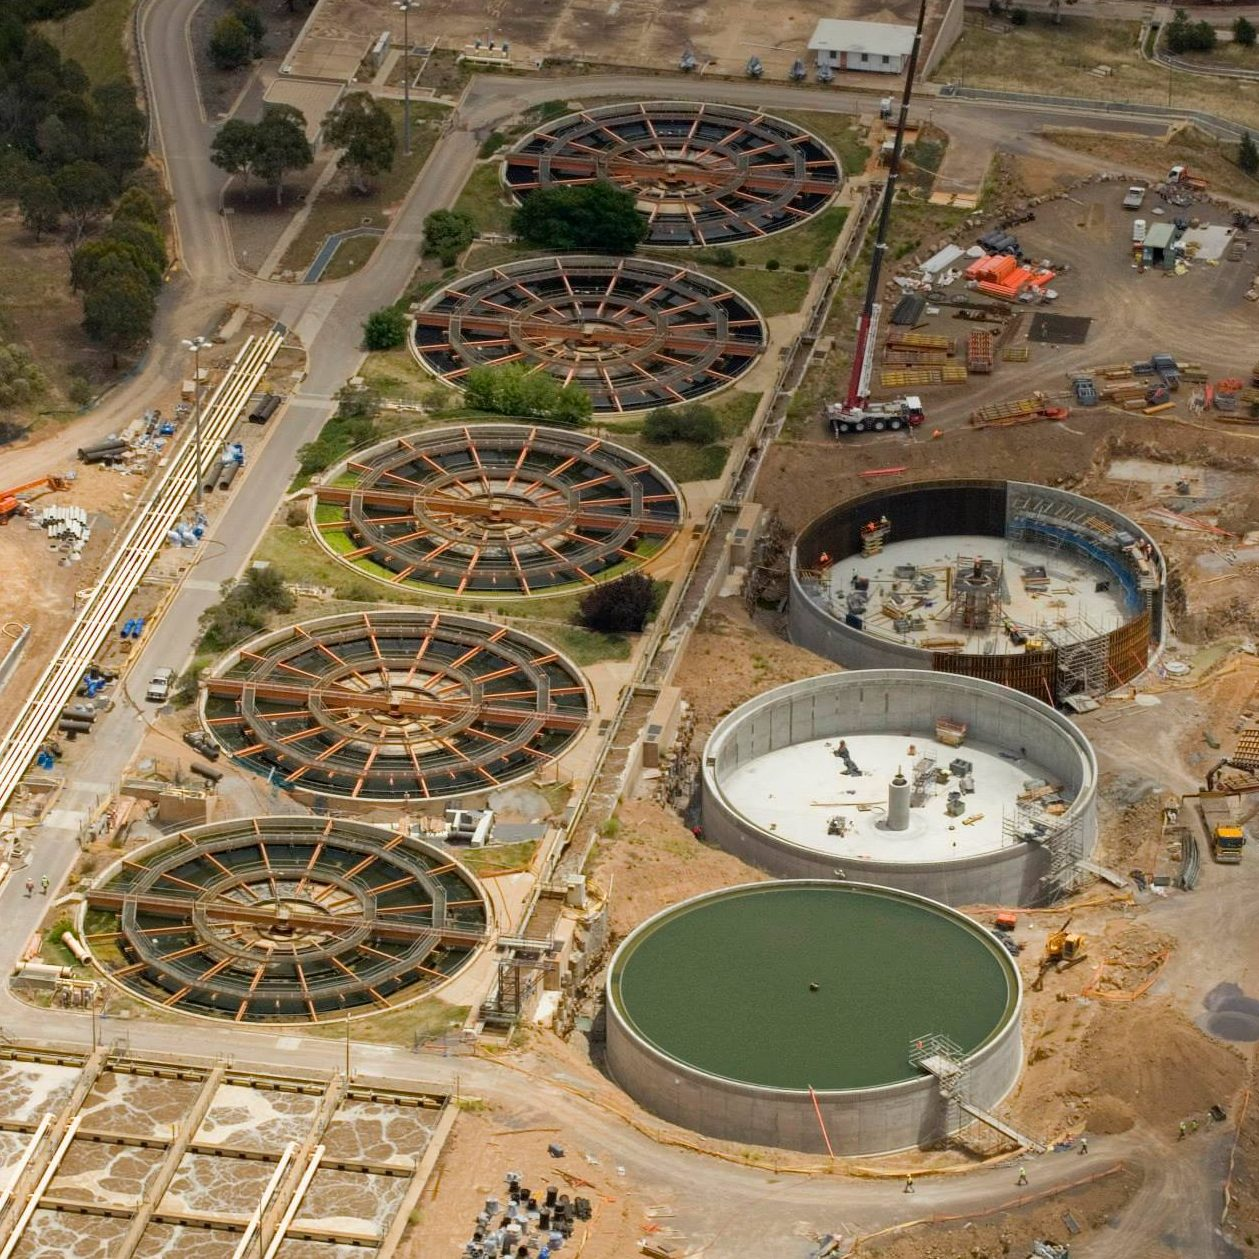 Molonglo Treatment Plant